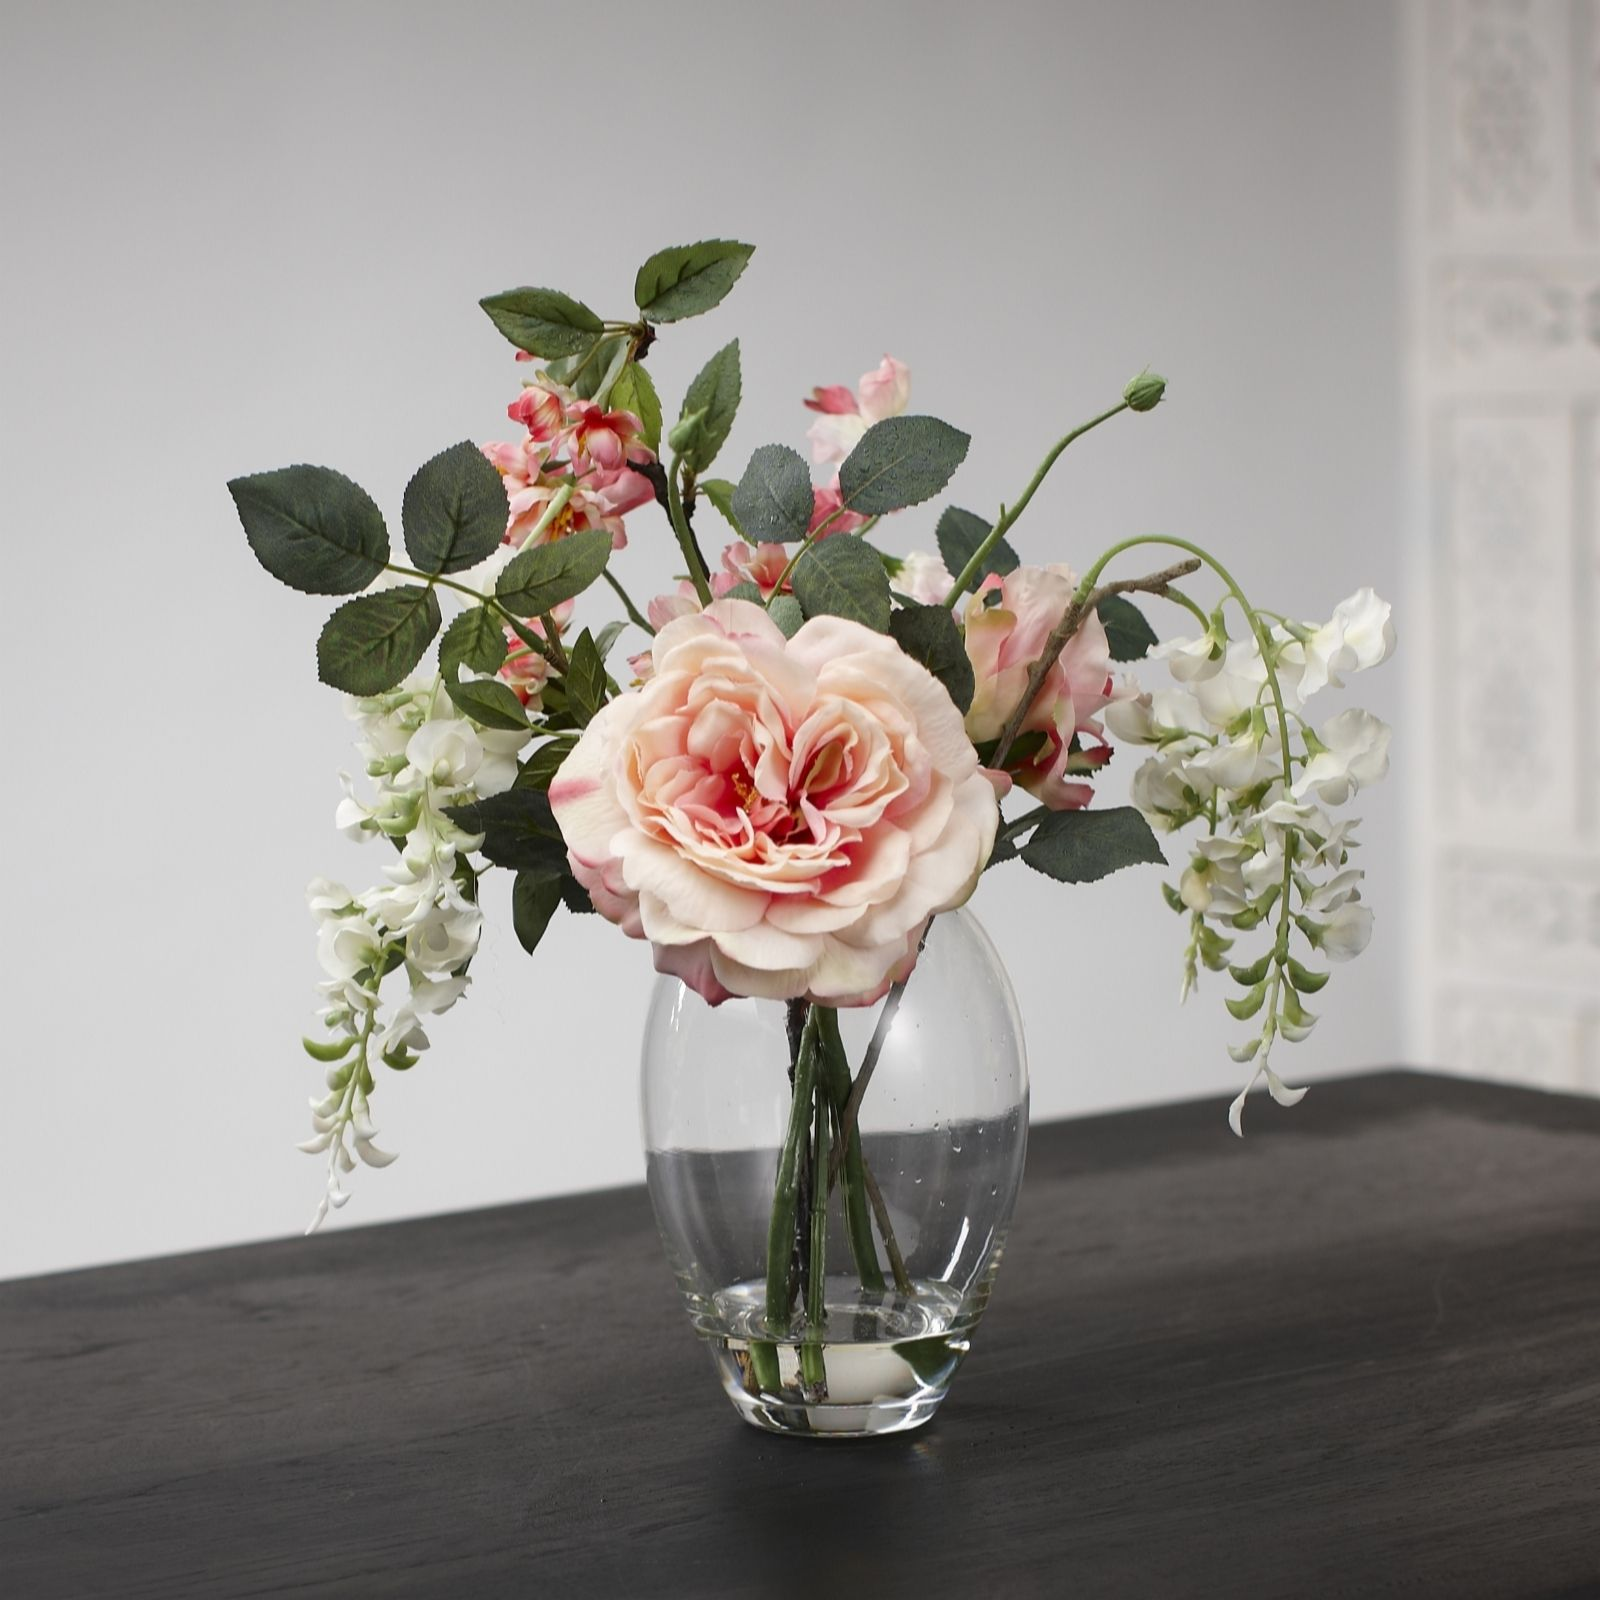 Rose And Wisteria Faux Flowers In A Vase From Peony Bunga